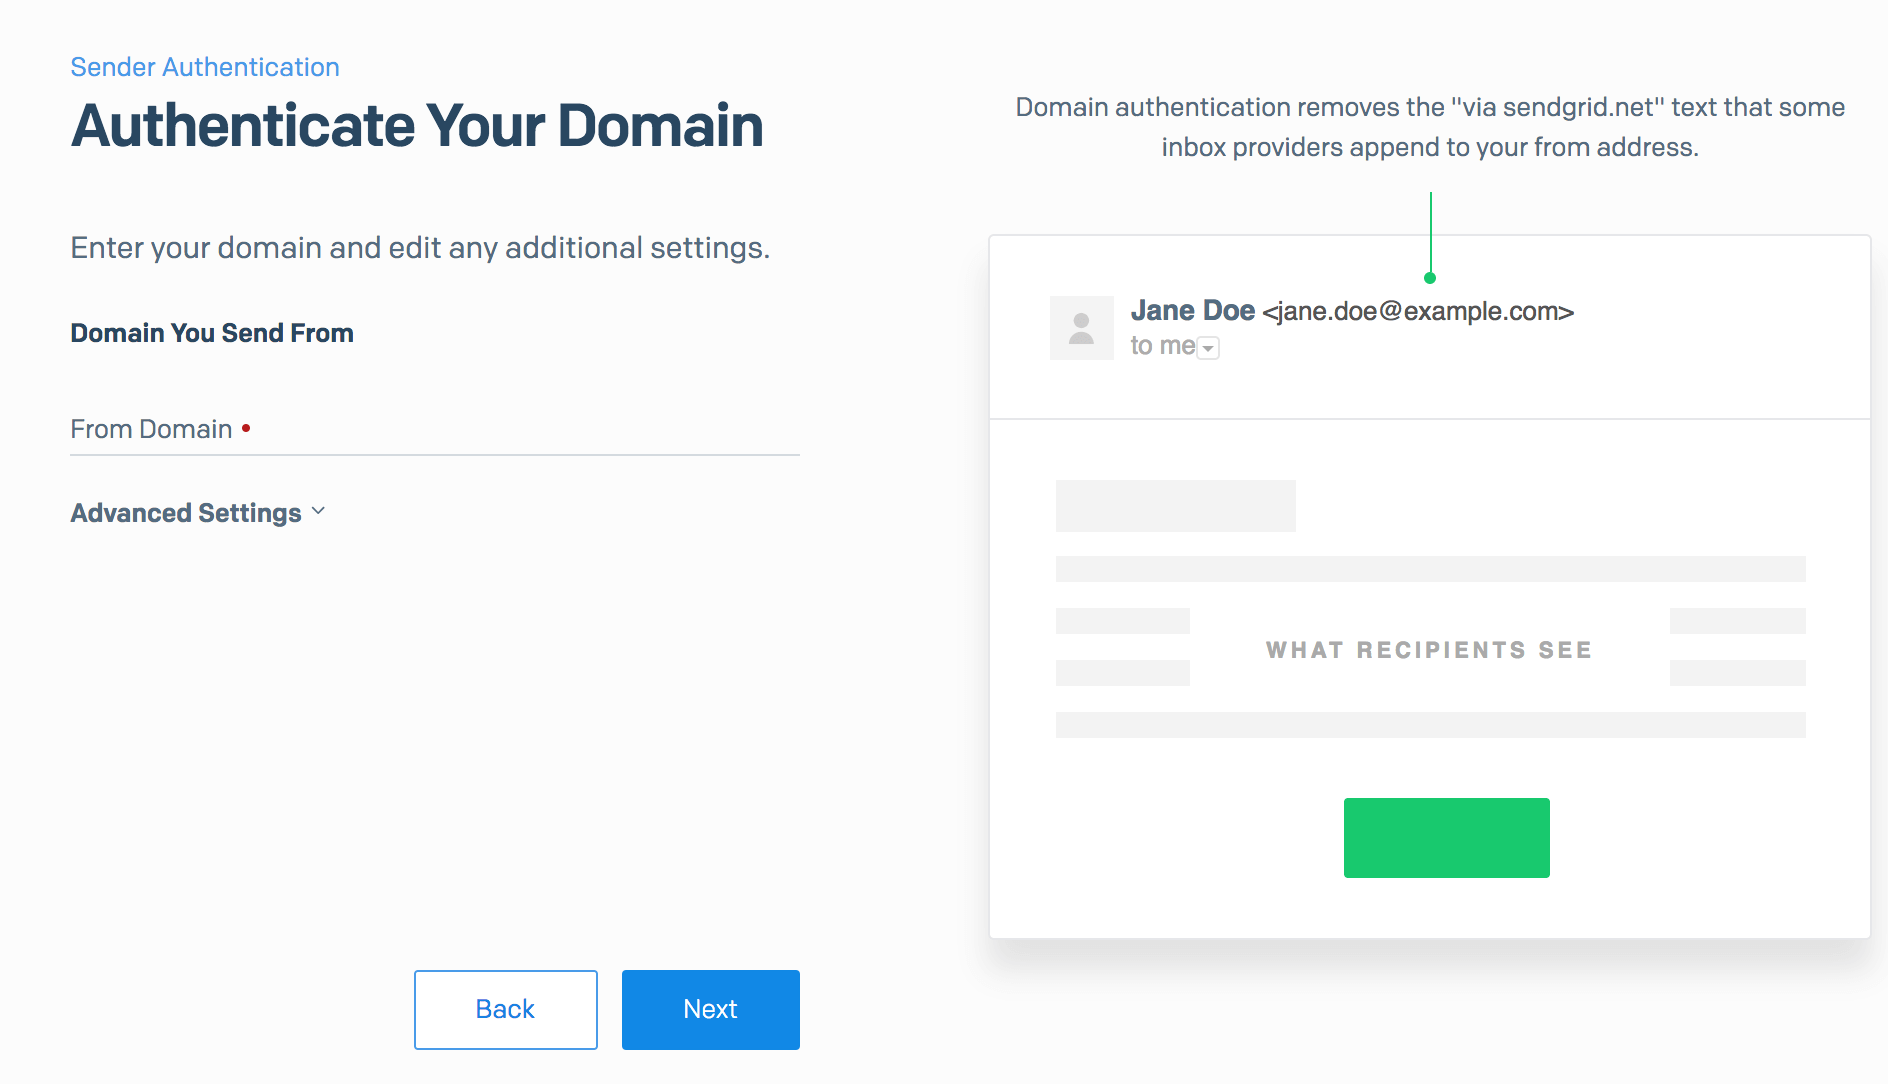 Authenticate email domain in SendGrid - Enter domain